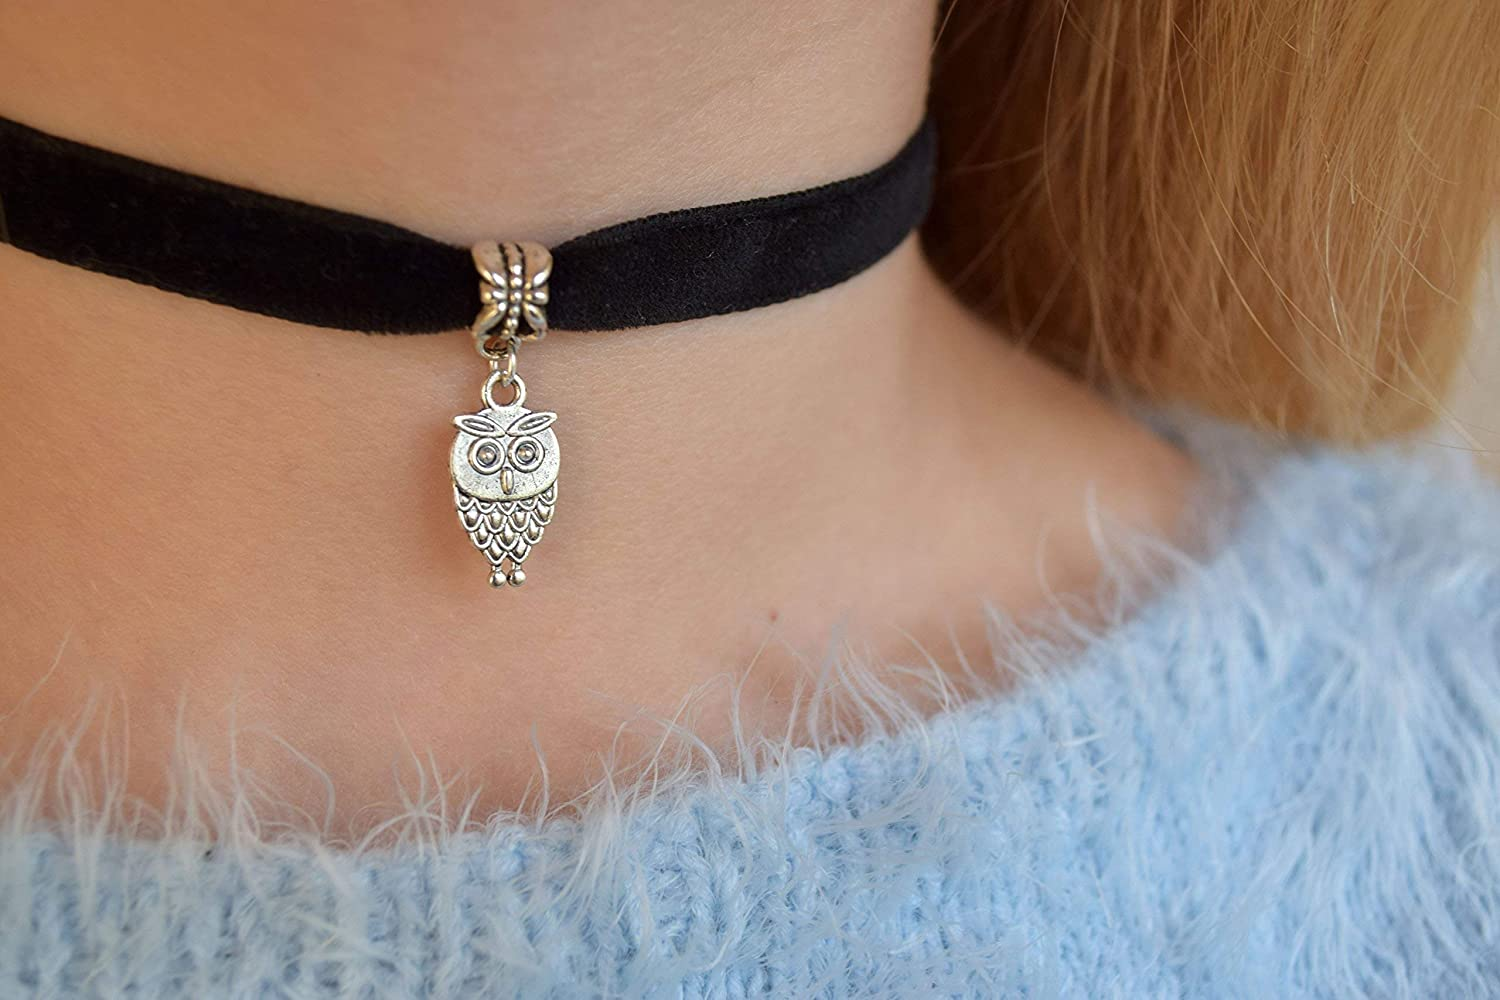 Choker Necklace Velvet Direct store Jewelry Owl Gift Special Campaign Woman Teen Girl